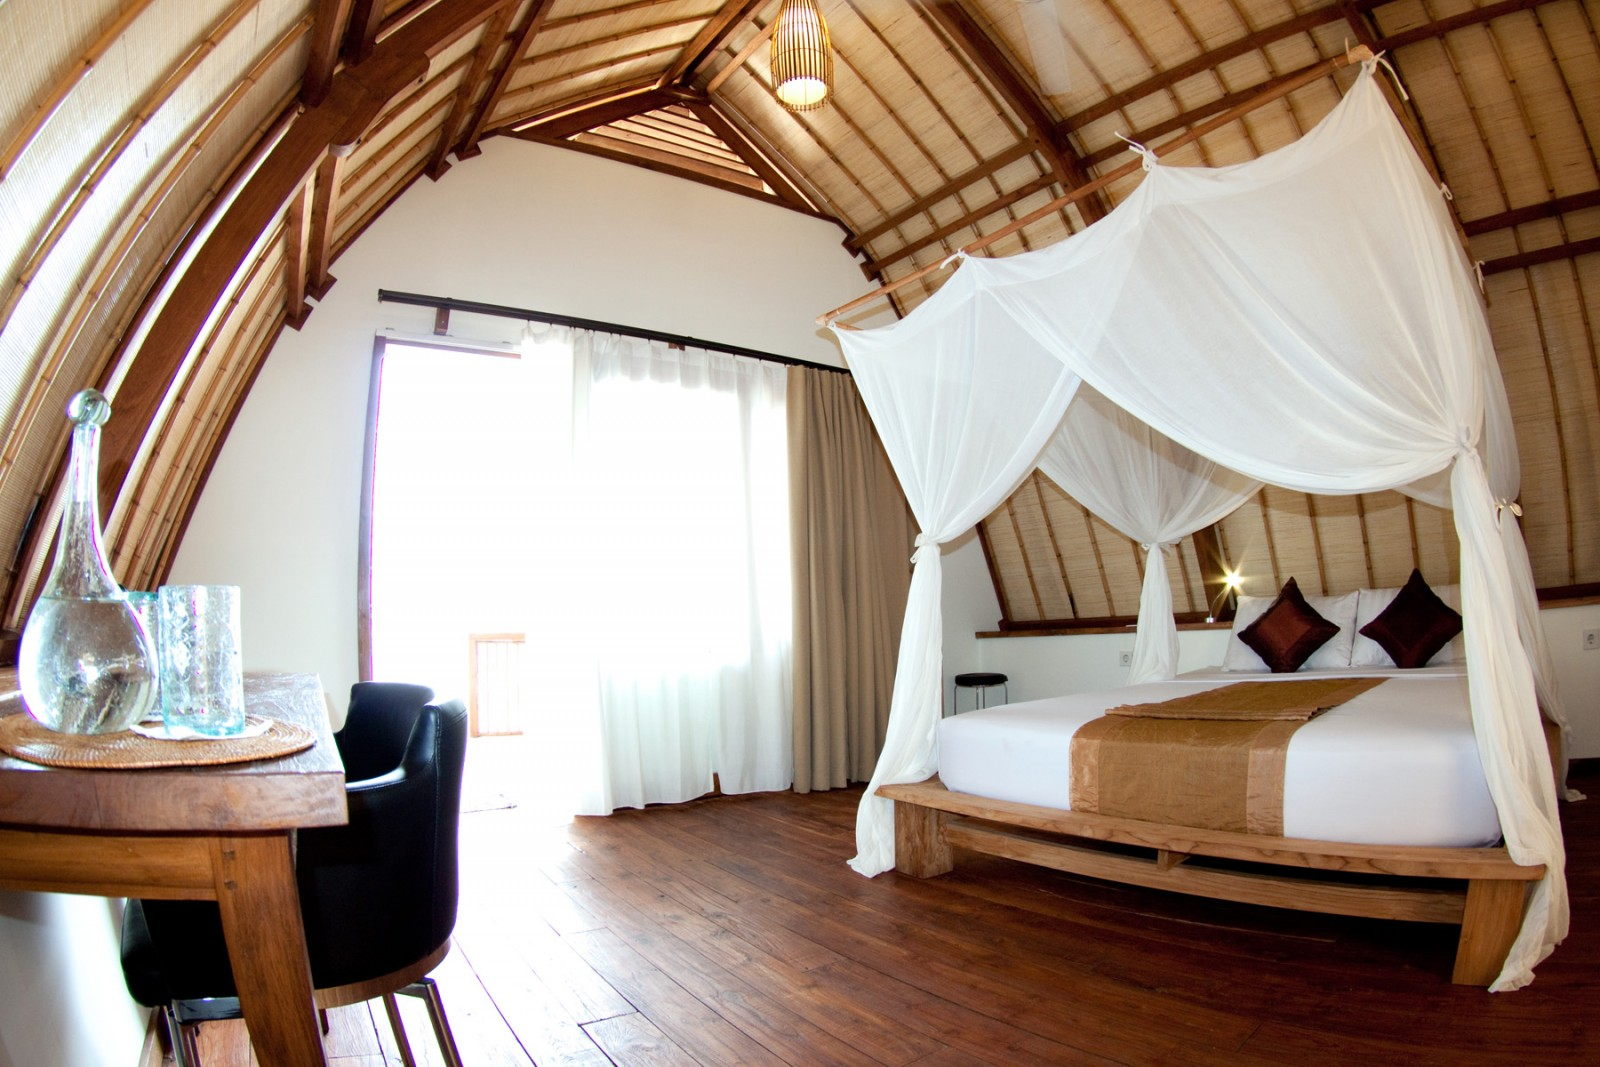 Beach cabanas are styled after lumbung rice barns. Photo by Komodo Resort & Diving Club